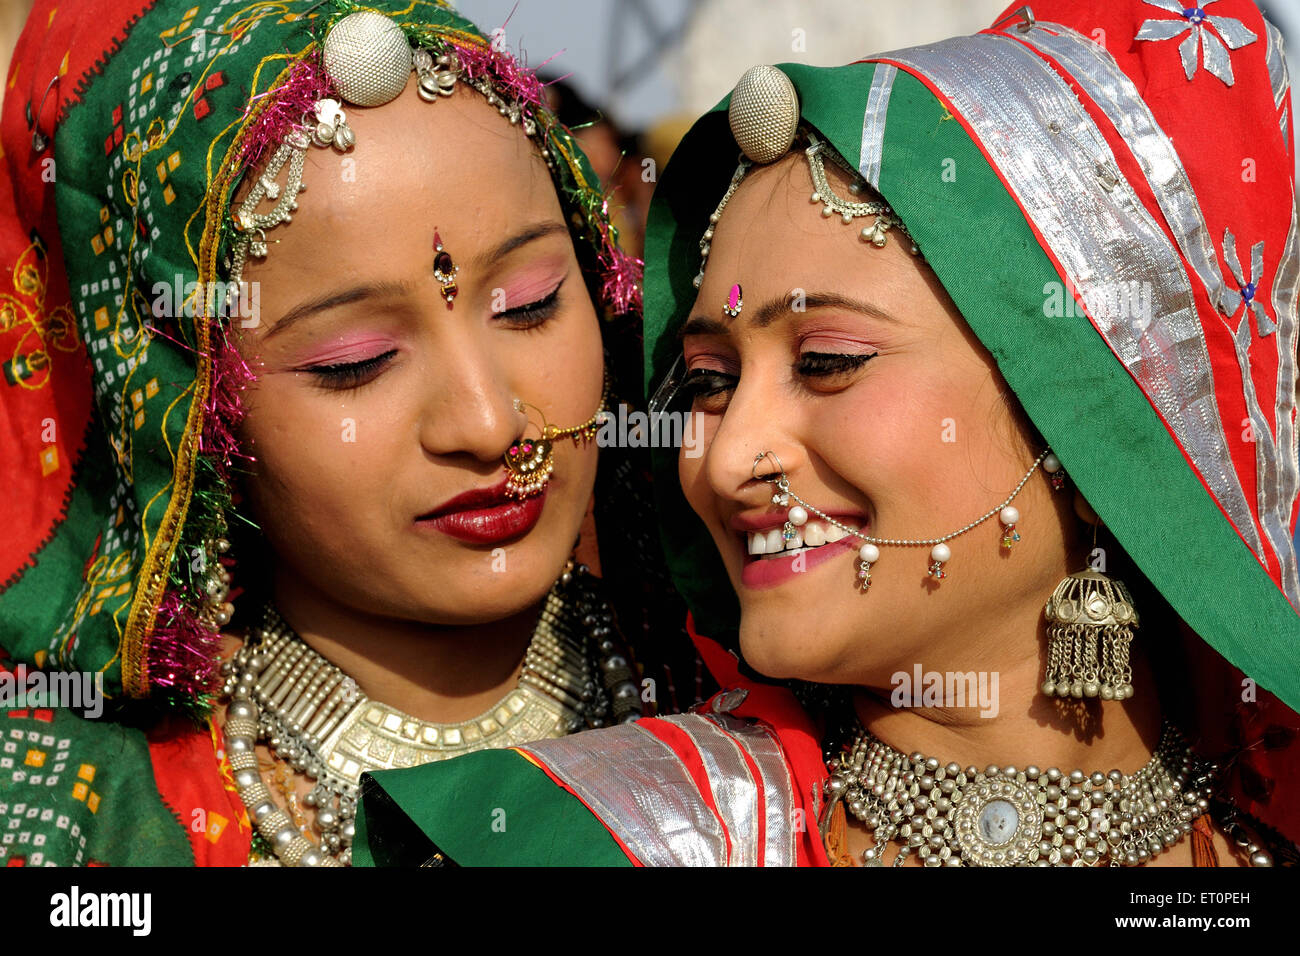 rajasthani dating site Rajasthan: rajasthan, state of northwestern india, located in the northwestern part of the indian subcontinent bharatpur—the latter designated a unesco world heritage site in 1985 pottery fragments at kalibangan date to 2700 bce.